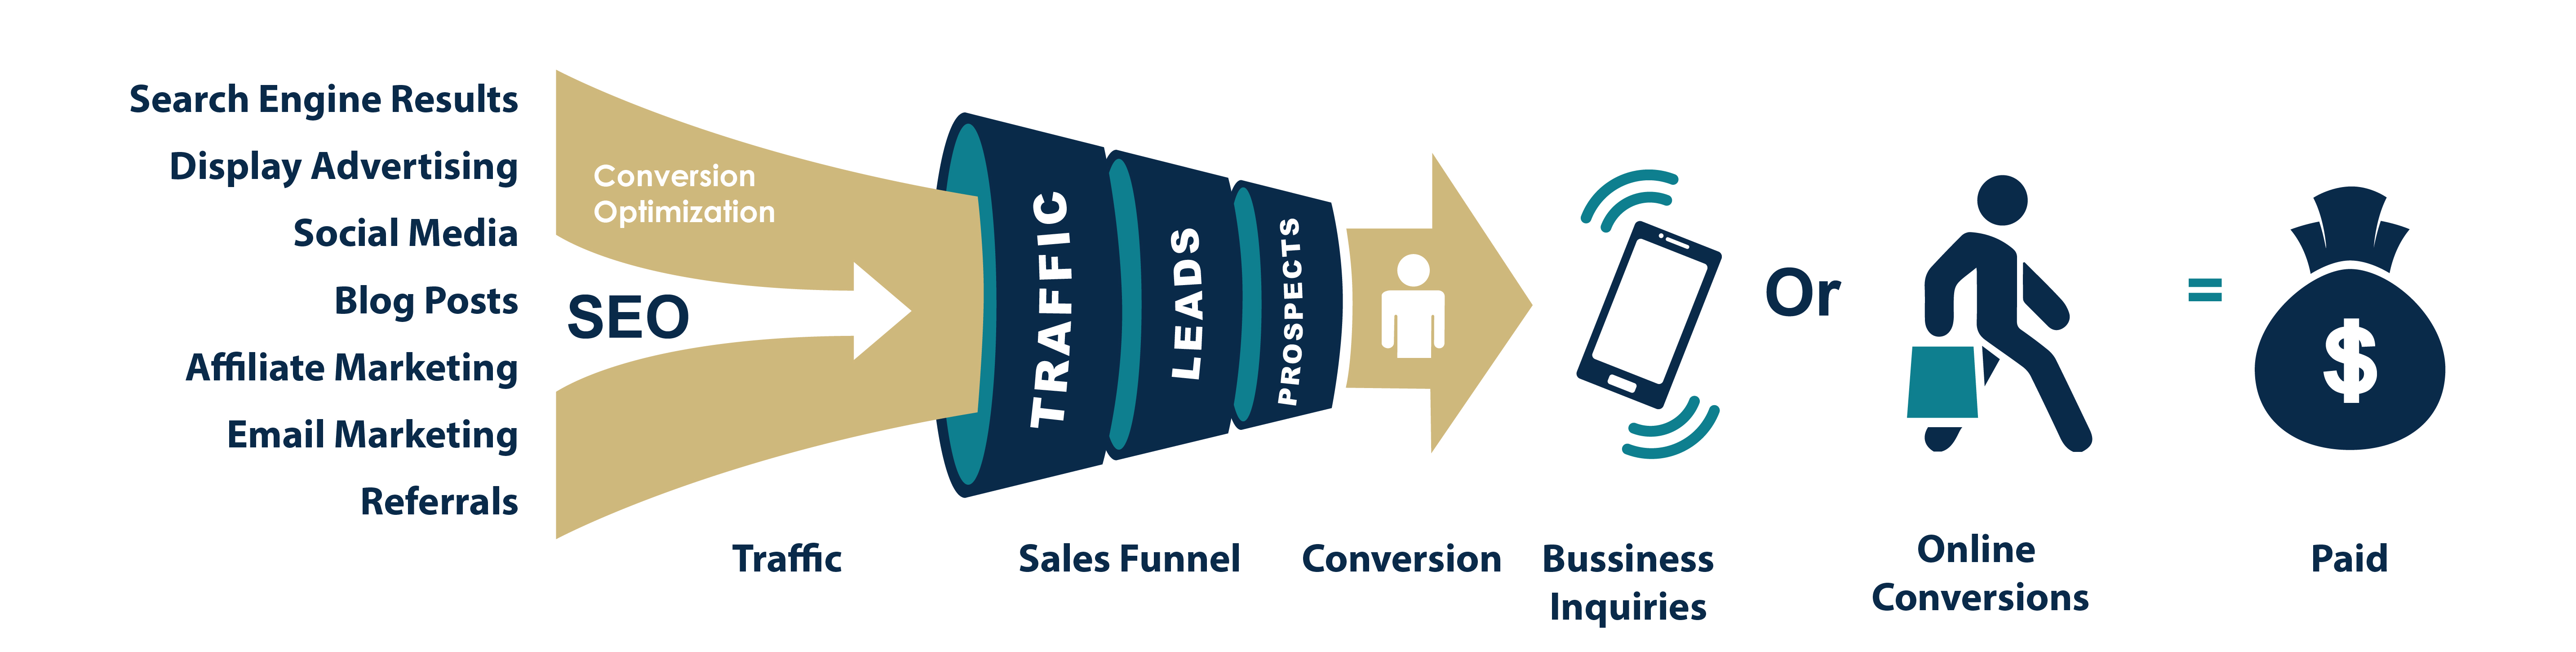 picture of the wip marketing conversion optimization sales funnel